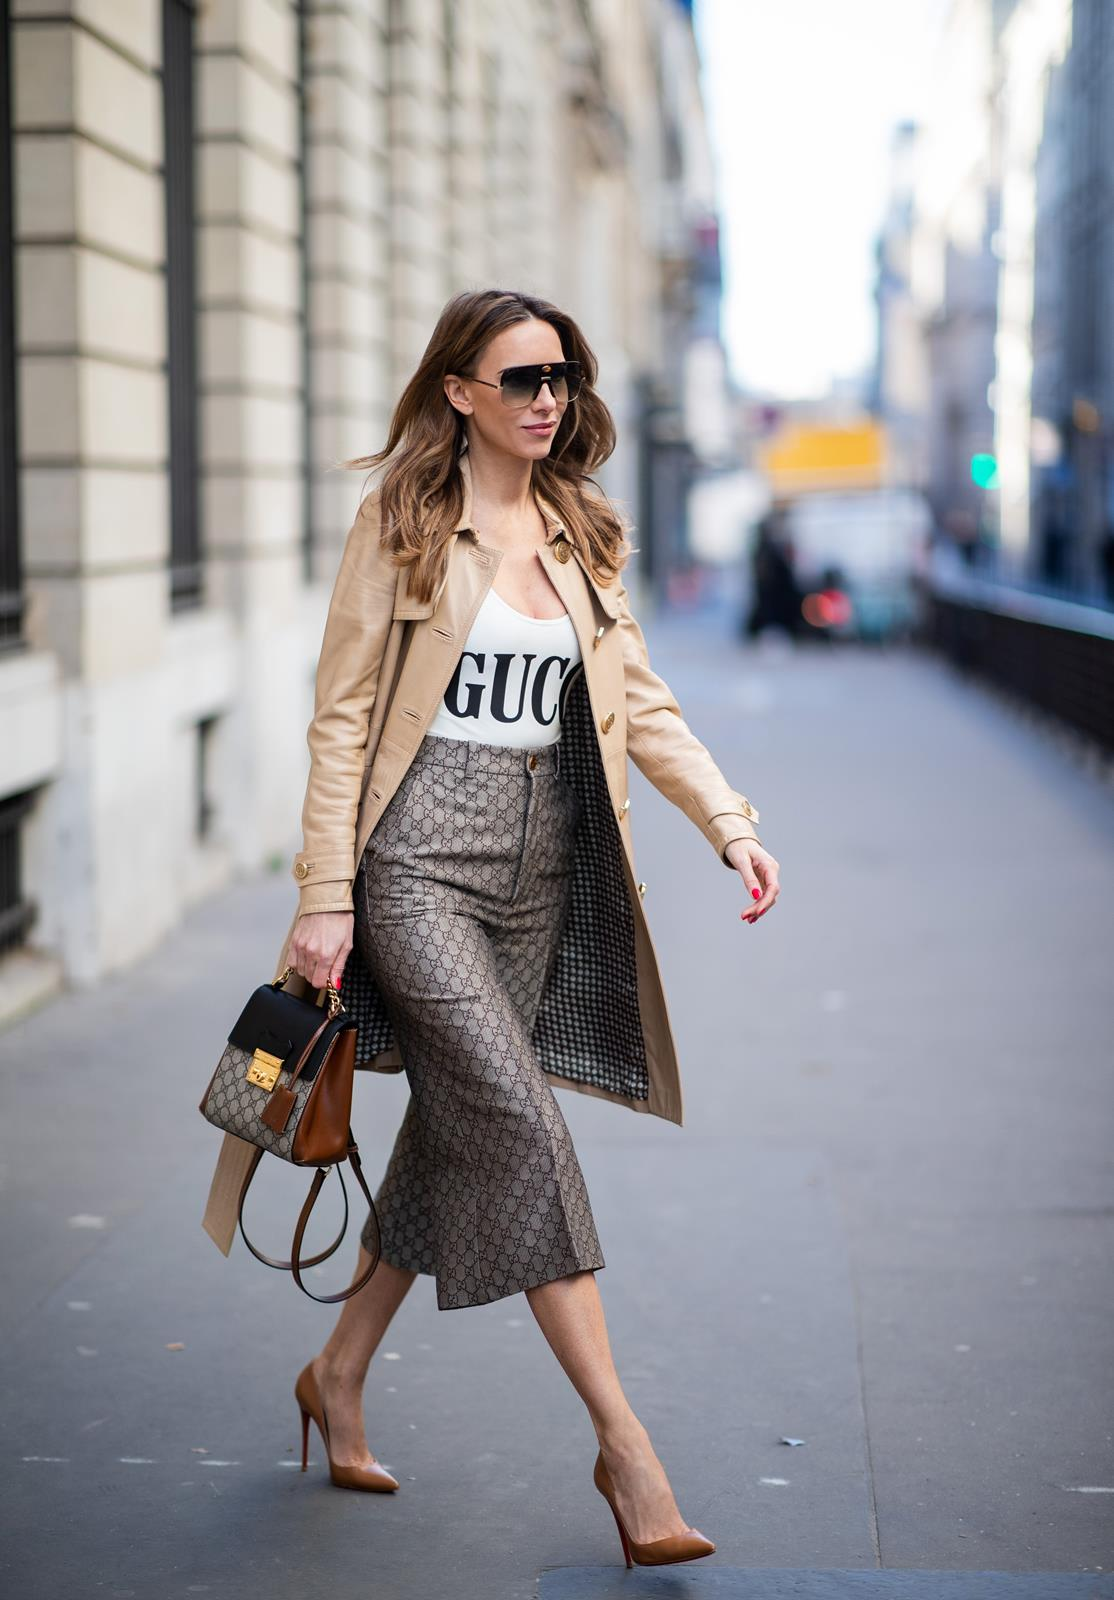 c00eb776 ... Alexandra Lapp in a Gucci culotte pants look, wearing the Culottes with  monogram pattern, ...